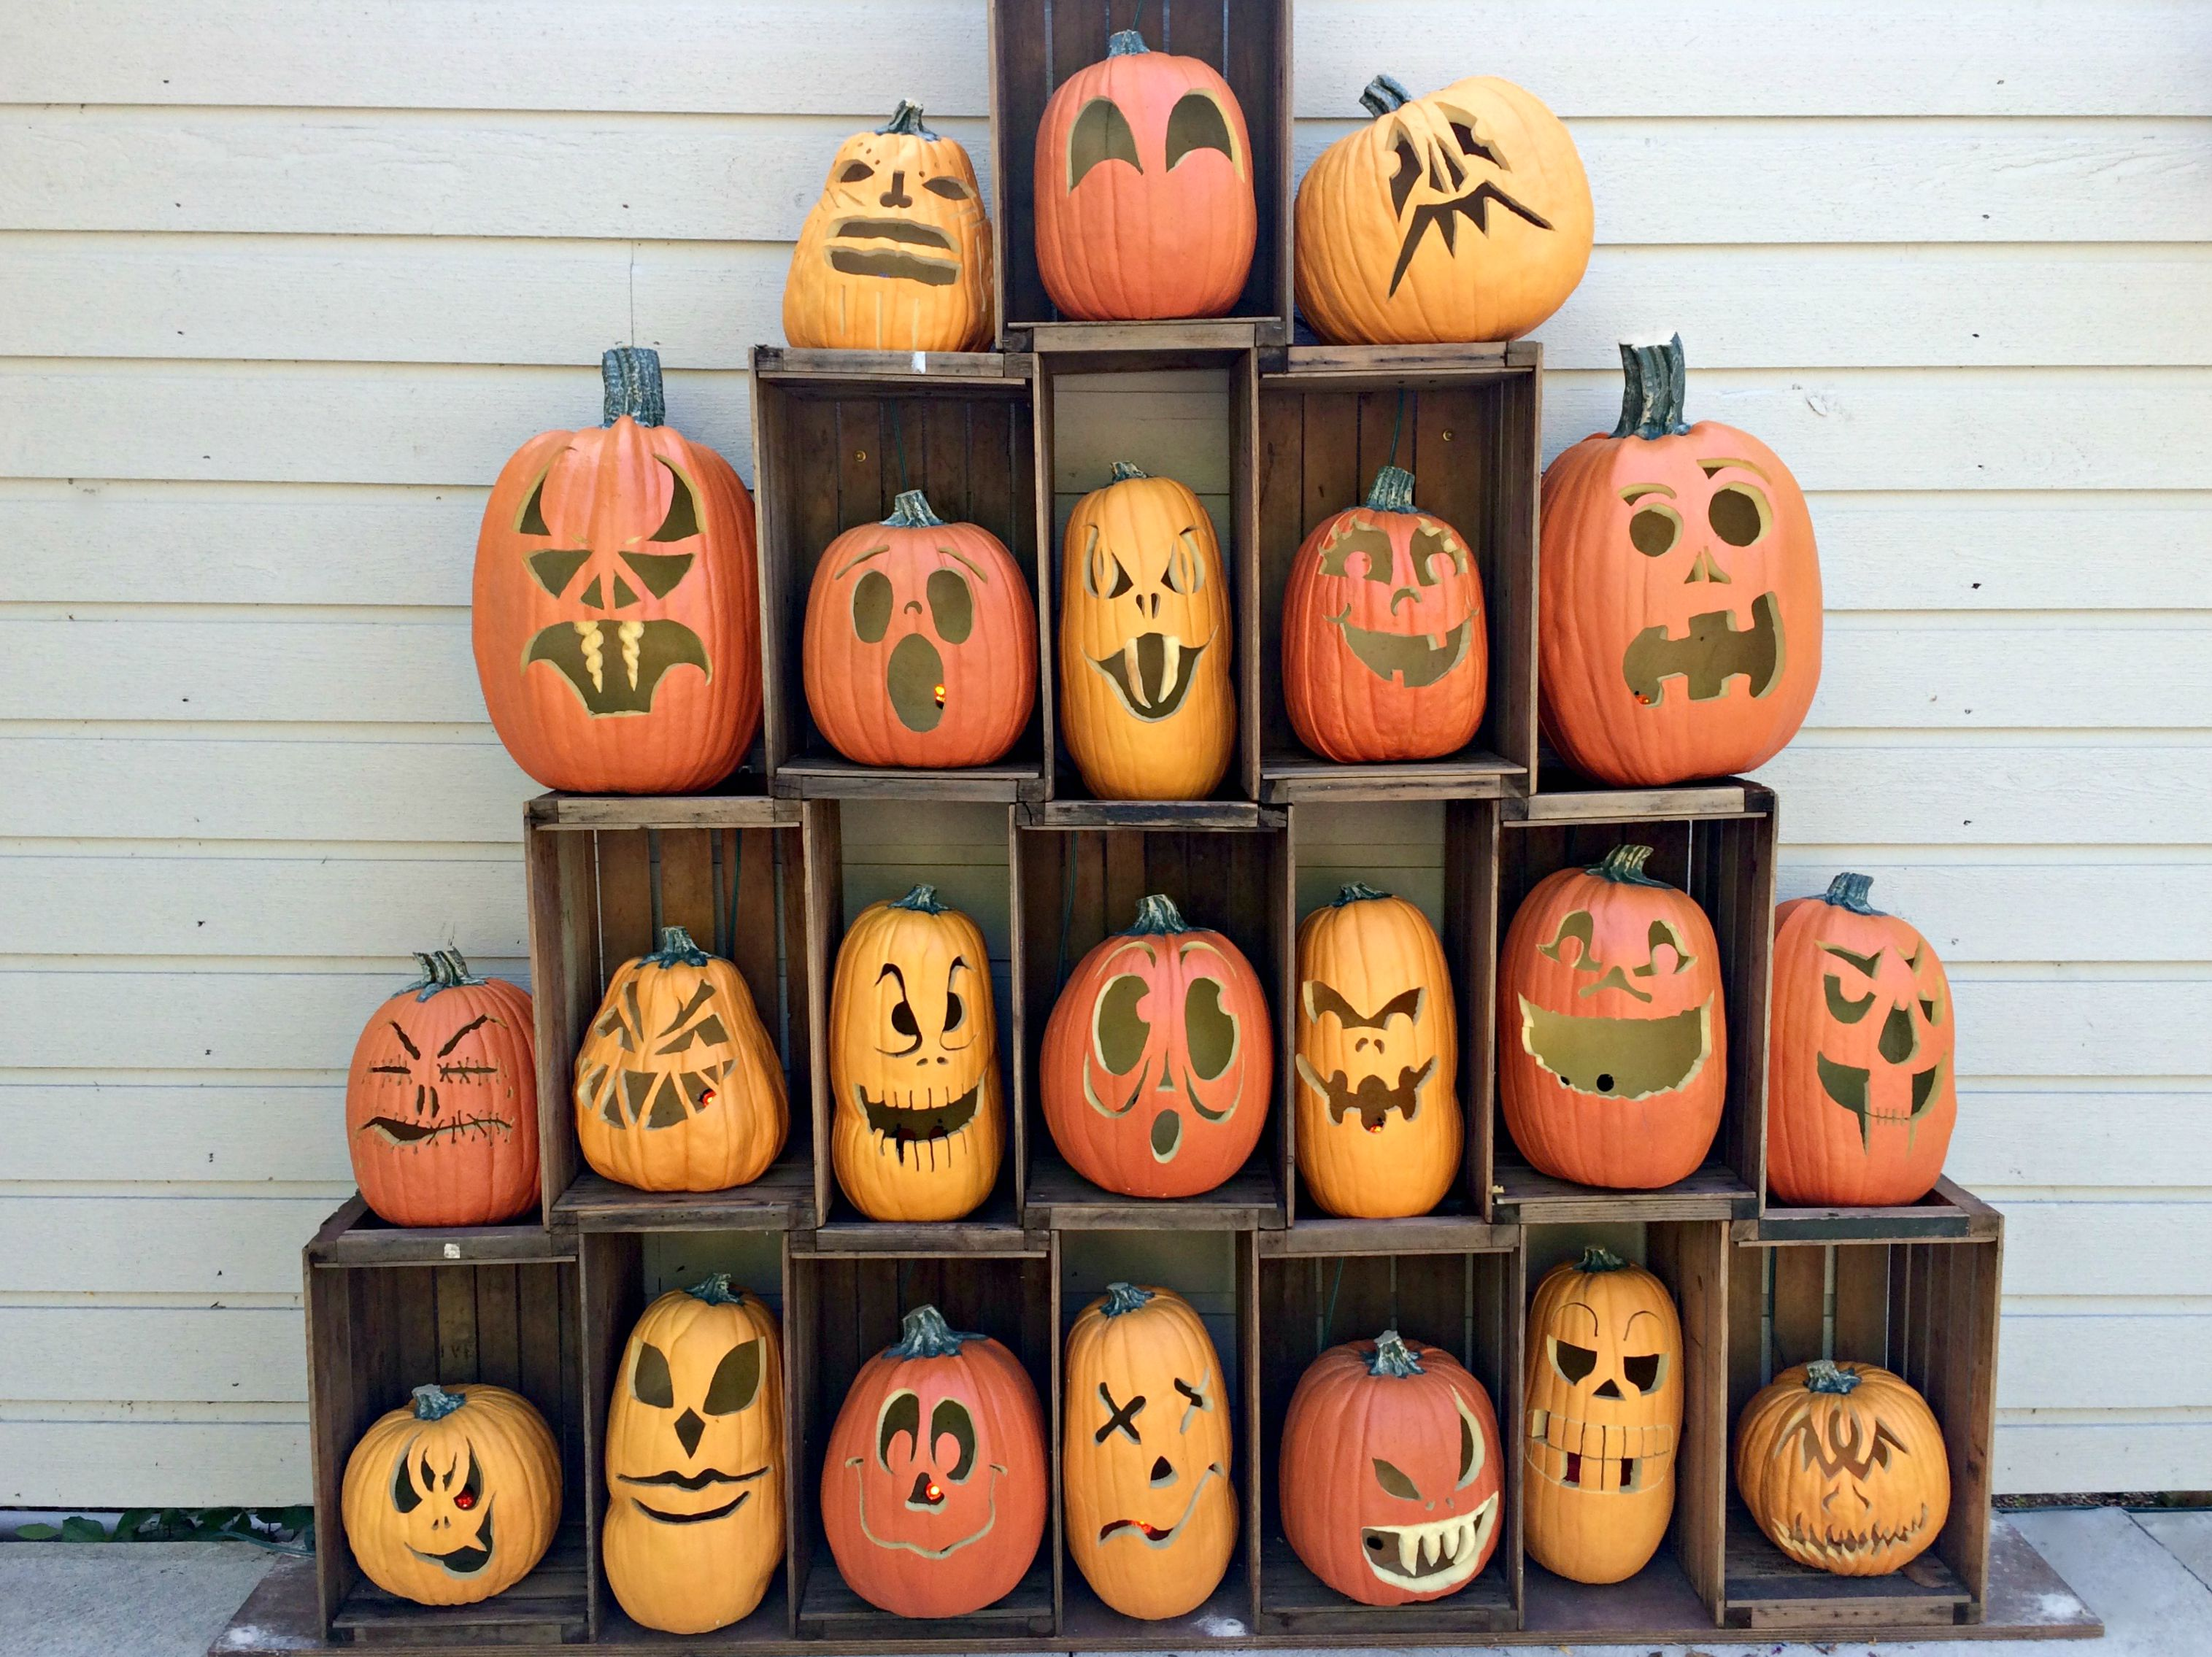 cedar point pumpkins for HalloWeekends